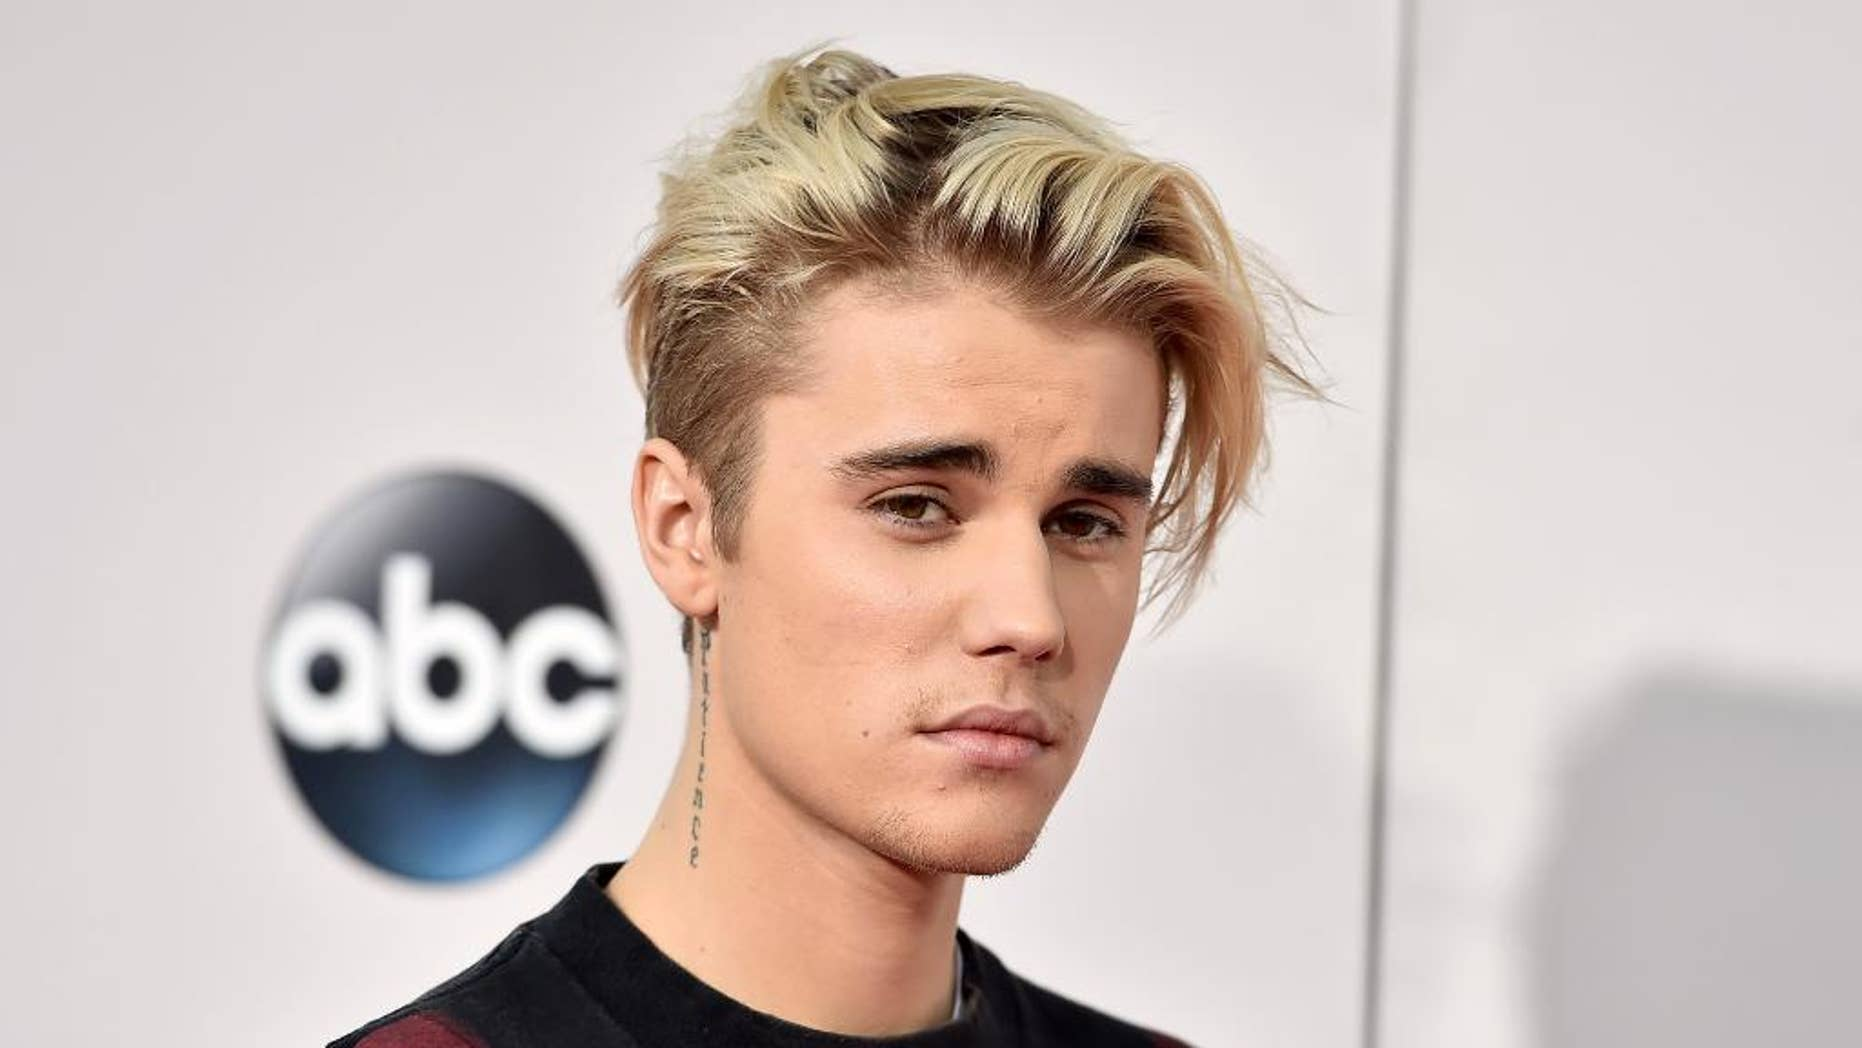 FILE - In this Nov. 22, 2015 file photo, Justin Bieber arrives at the American Music Awards at the Microsoft Theater in Los Angeles. Bieber threatened to go private on Instagram in a post on August 13, 2016, after getting negative comments from fans of ex-girlfriend Selena Gomez. (Photo by Jordan Strauss/Invision/AP, File)